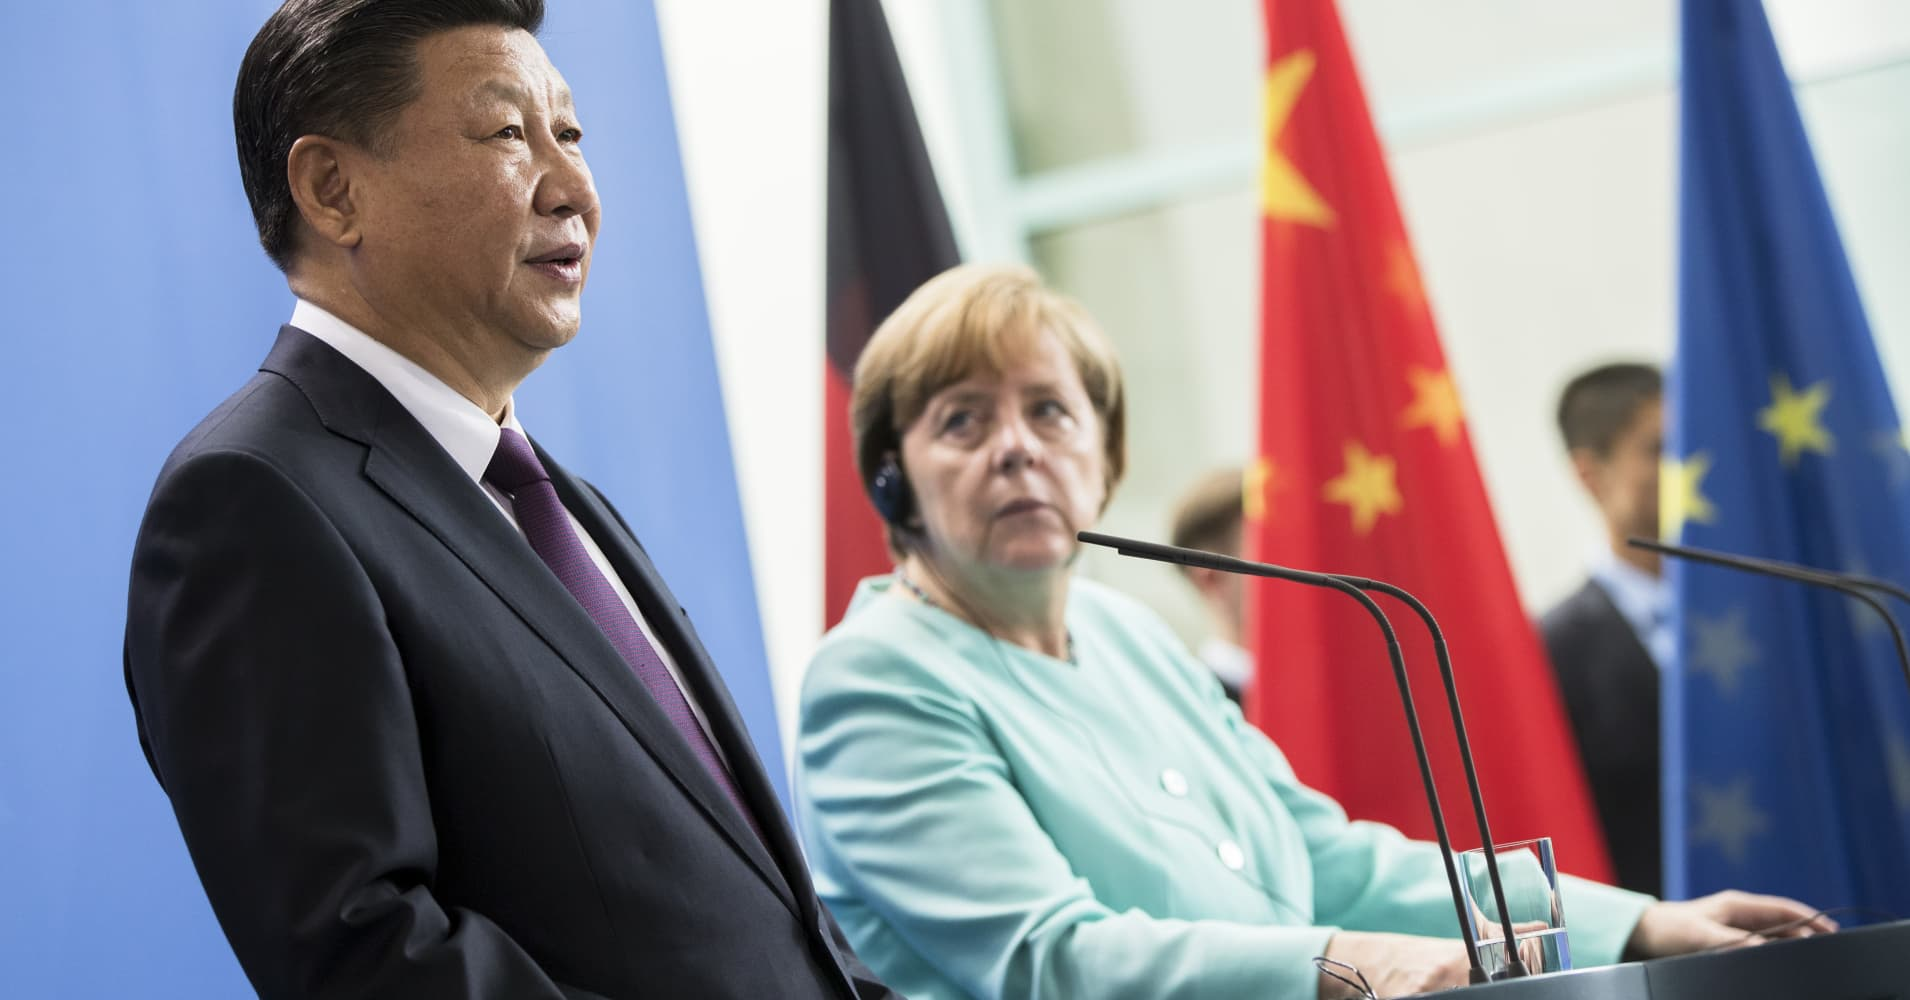 Europe should stand up and compete, not blame China